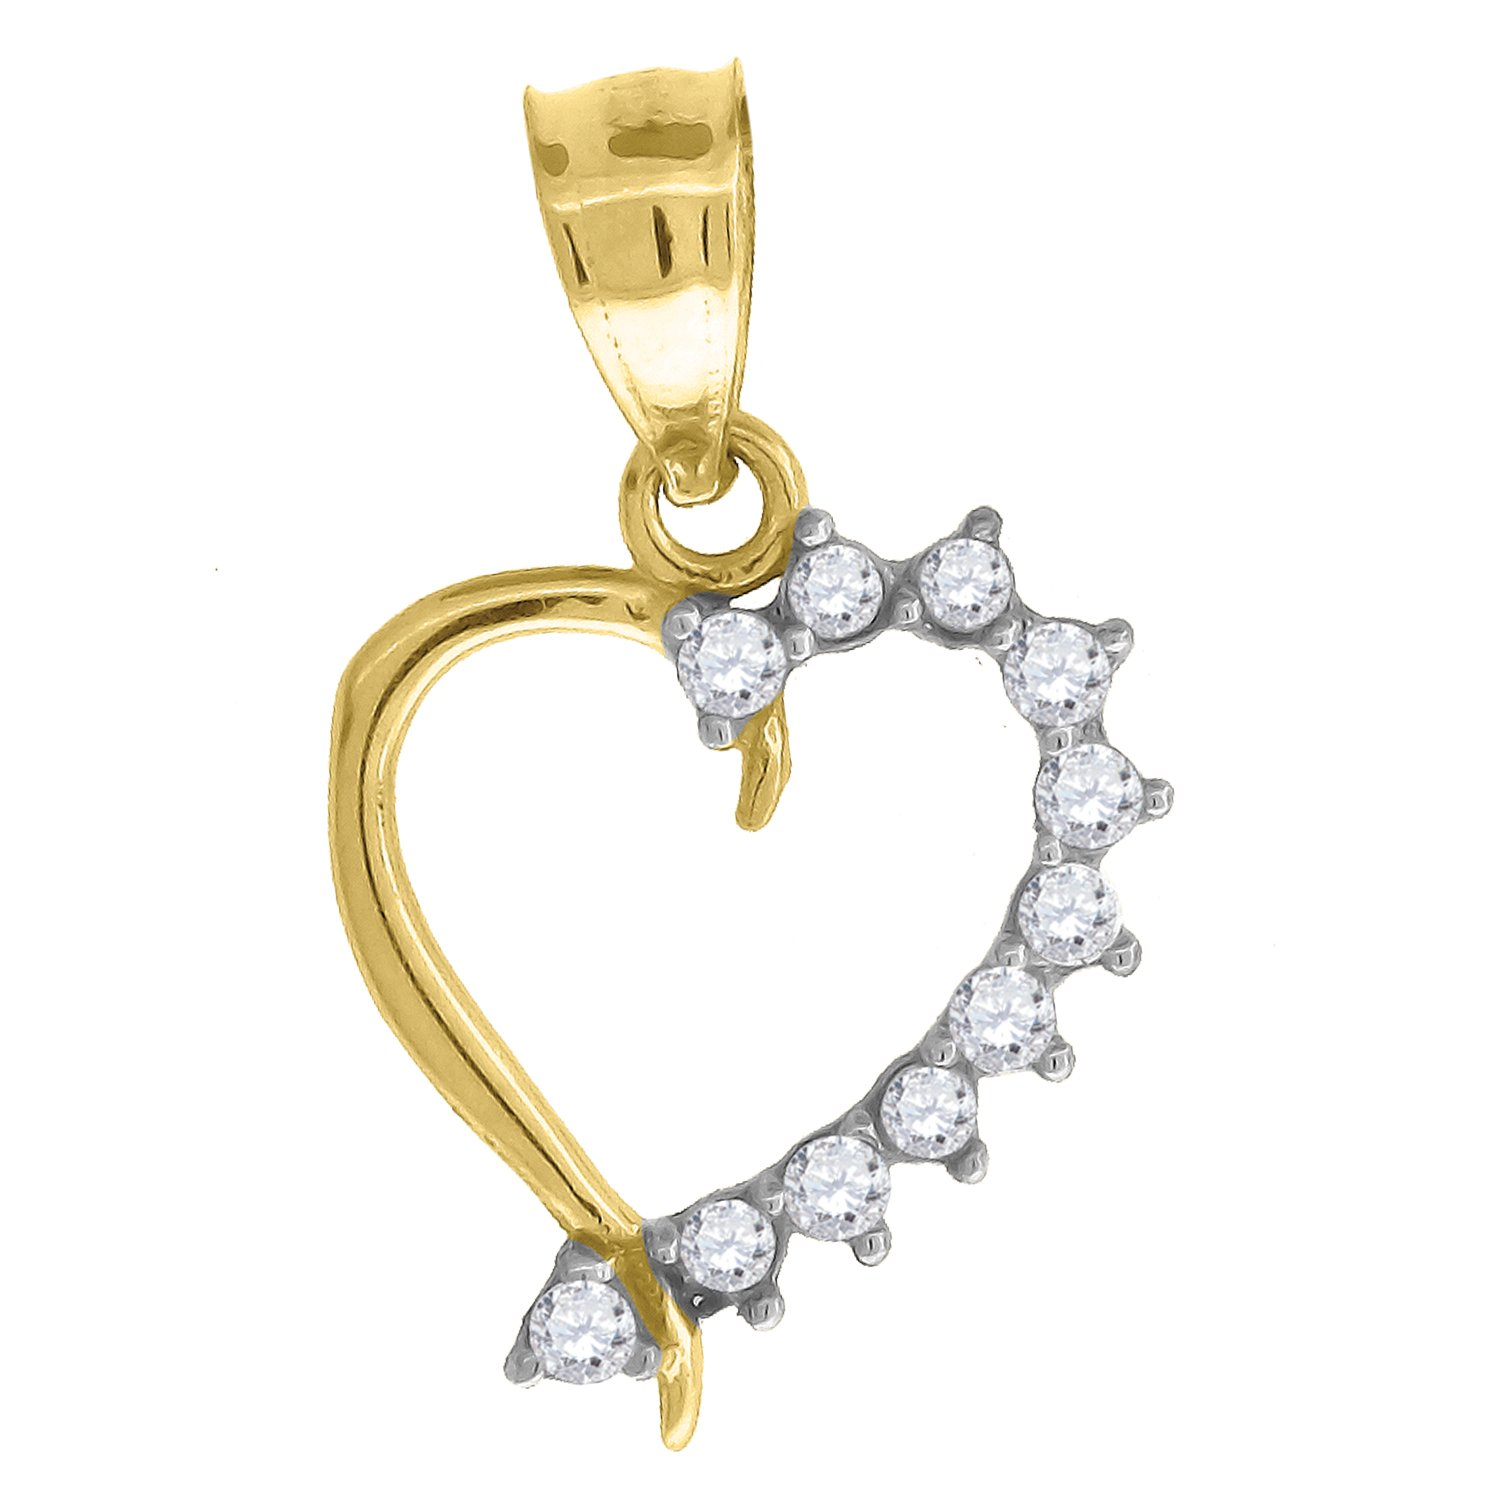 Jewels By Lux 10kt Gold Two-tone CZ Womans Ht:17.9mm x W:10.5mm Heart Charm Pendant Set with Cubic Zirconia that is white in color.